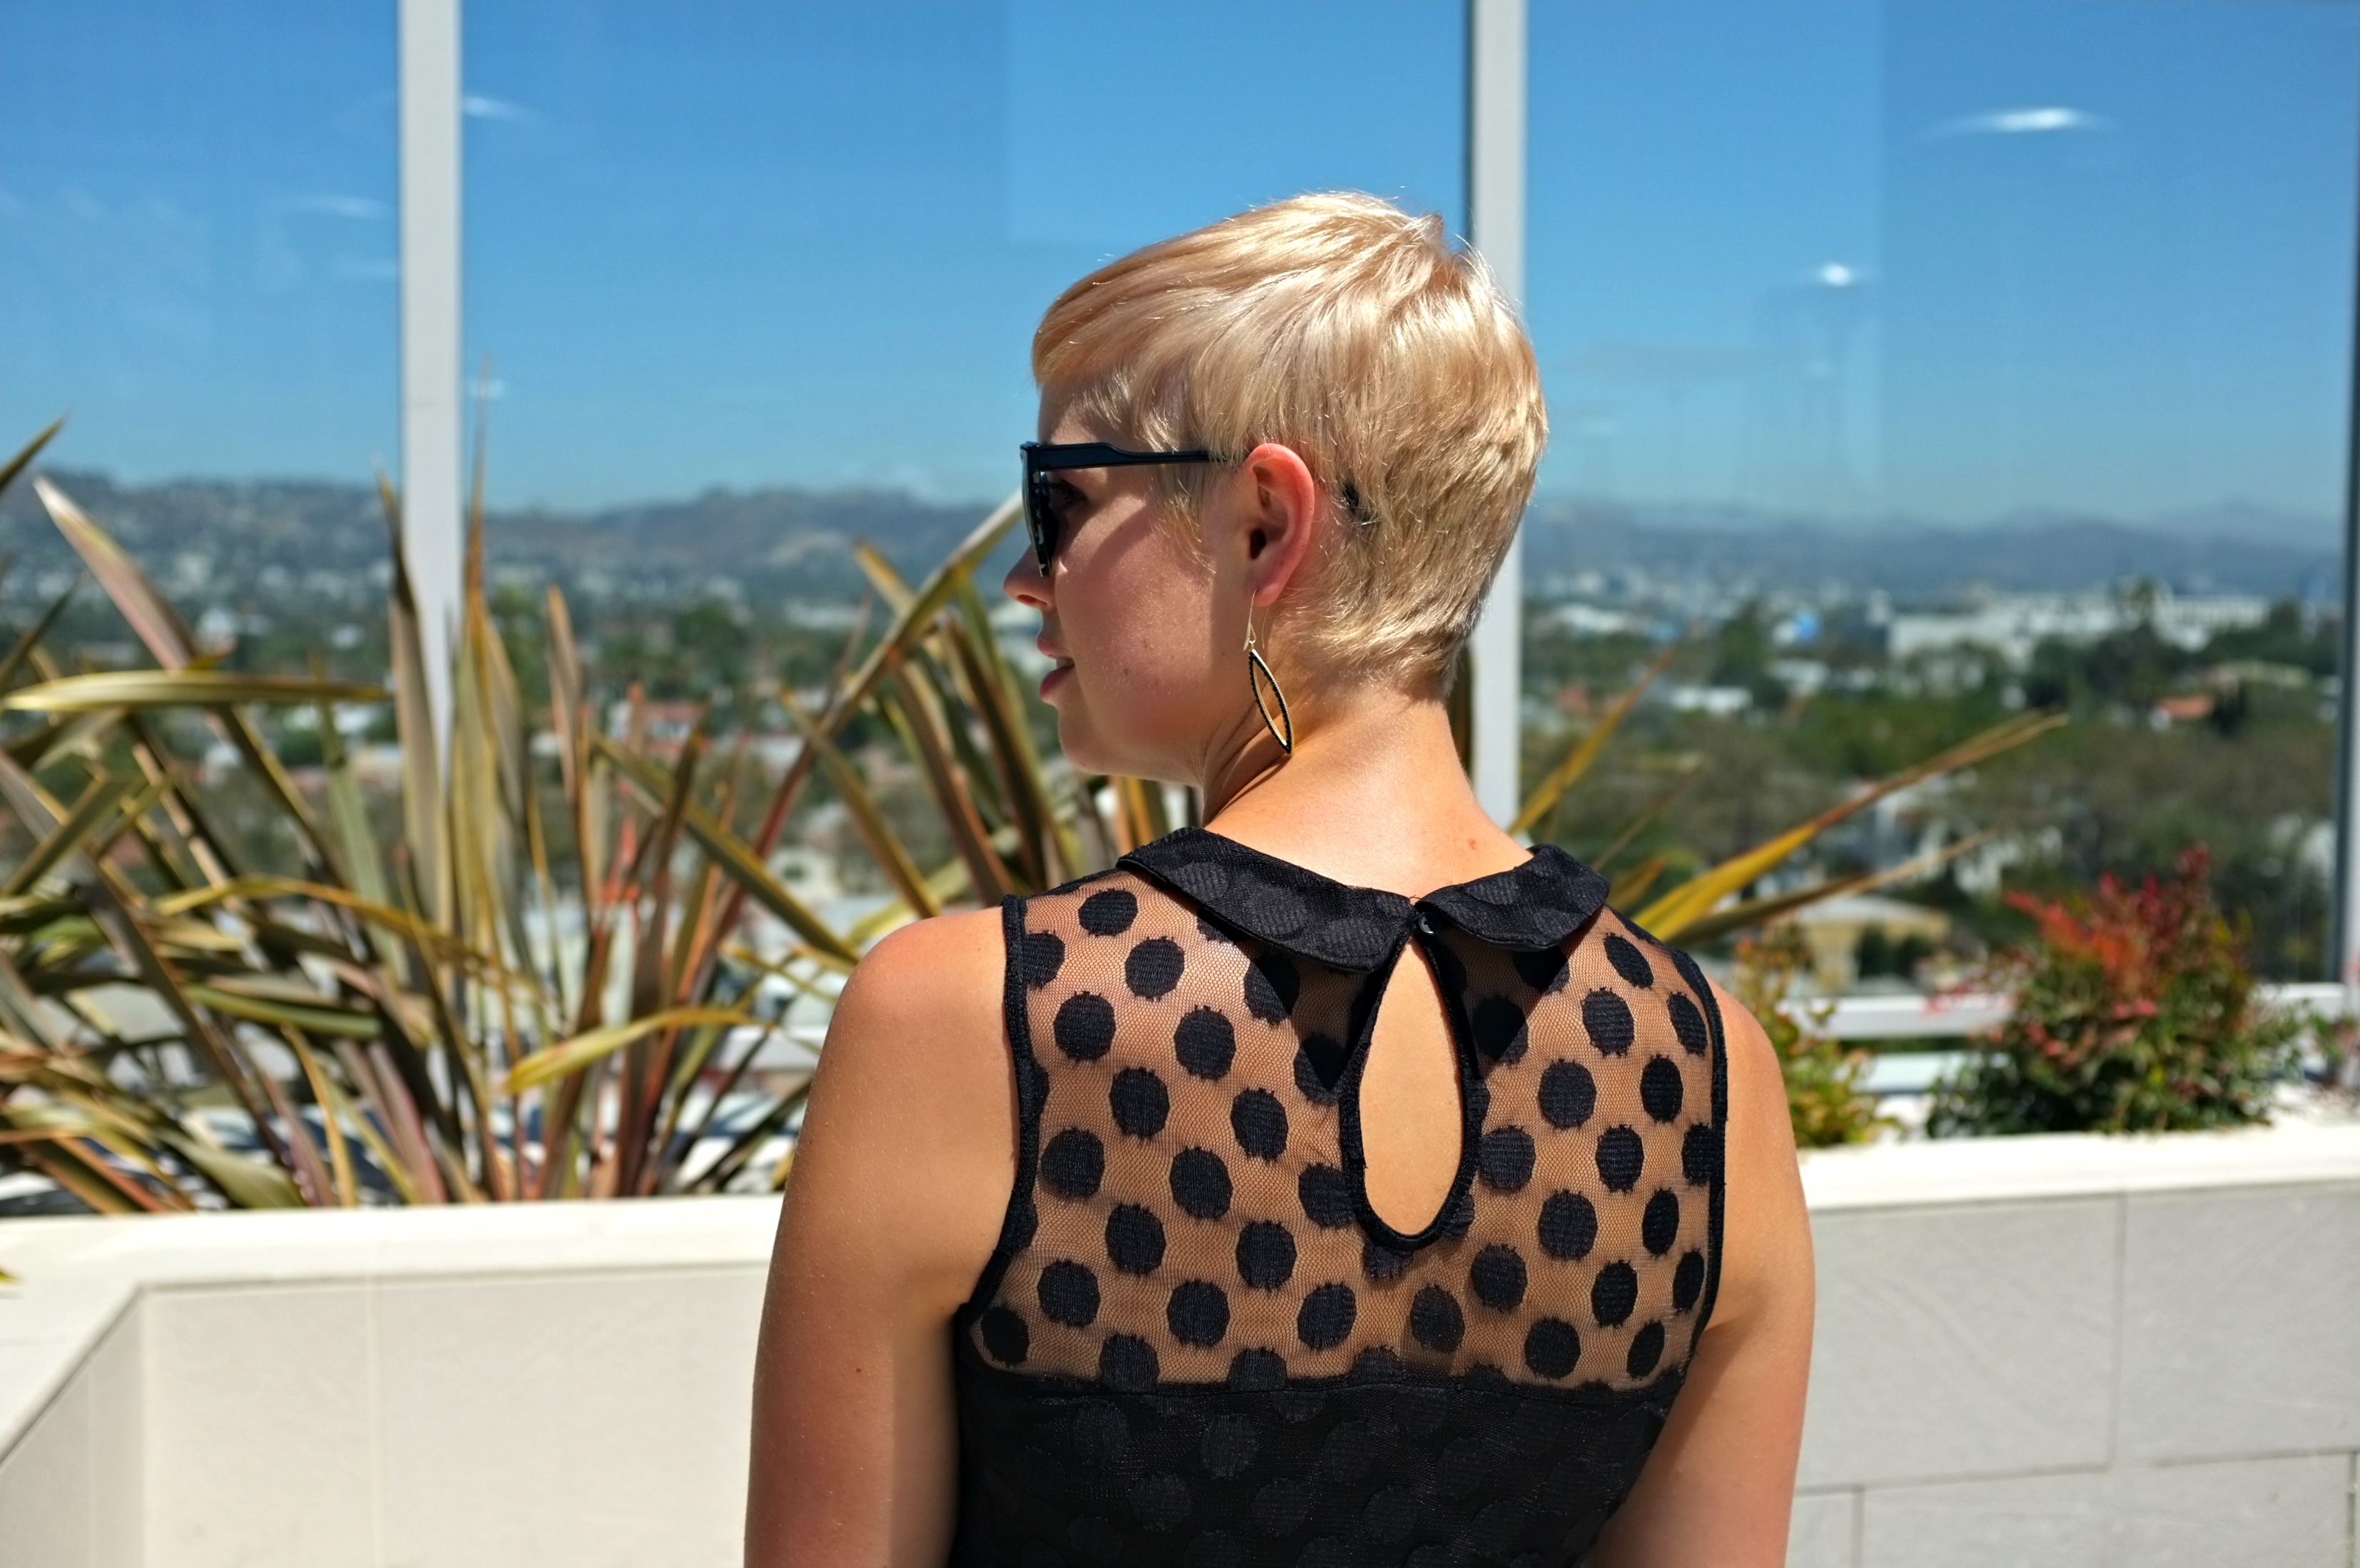 The Roof on Wilshire, rooftop brunch, rooftop cocktails, Beverly Hills style, polka dot dress, Xhiliration polka dot dress, Target polka dot dress